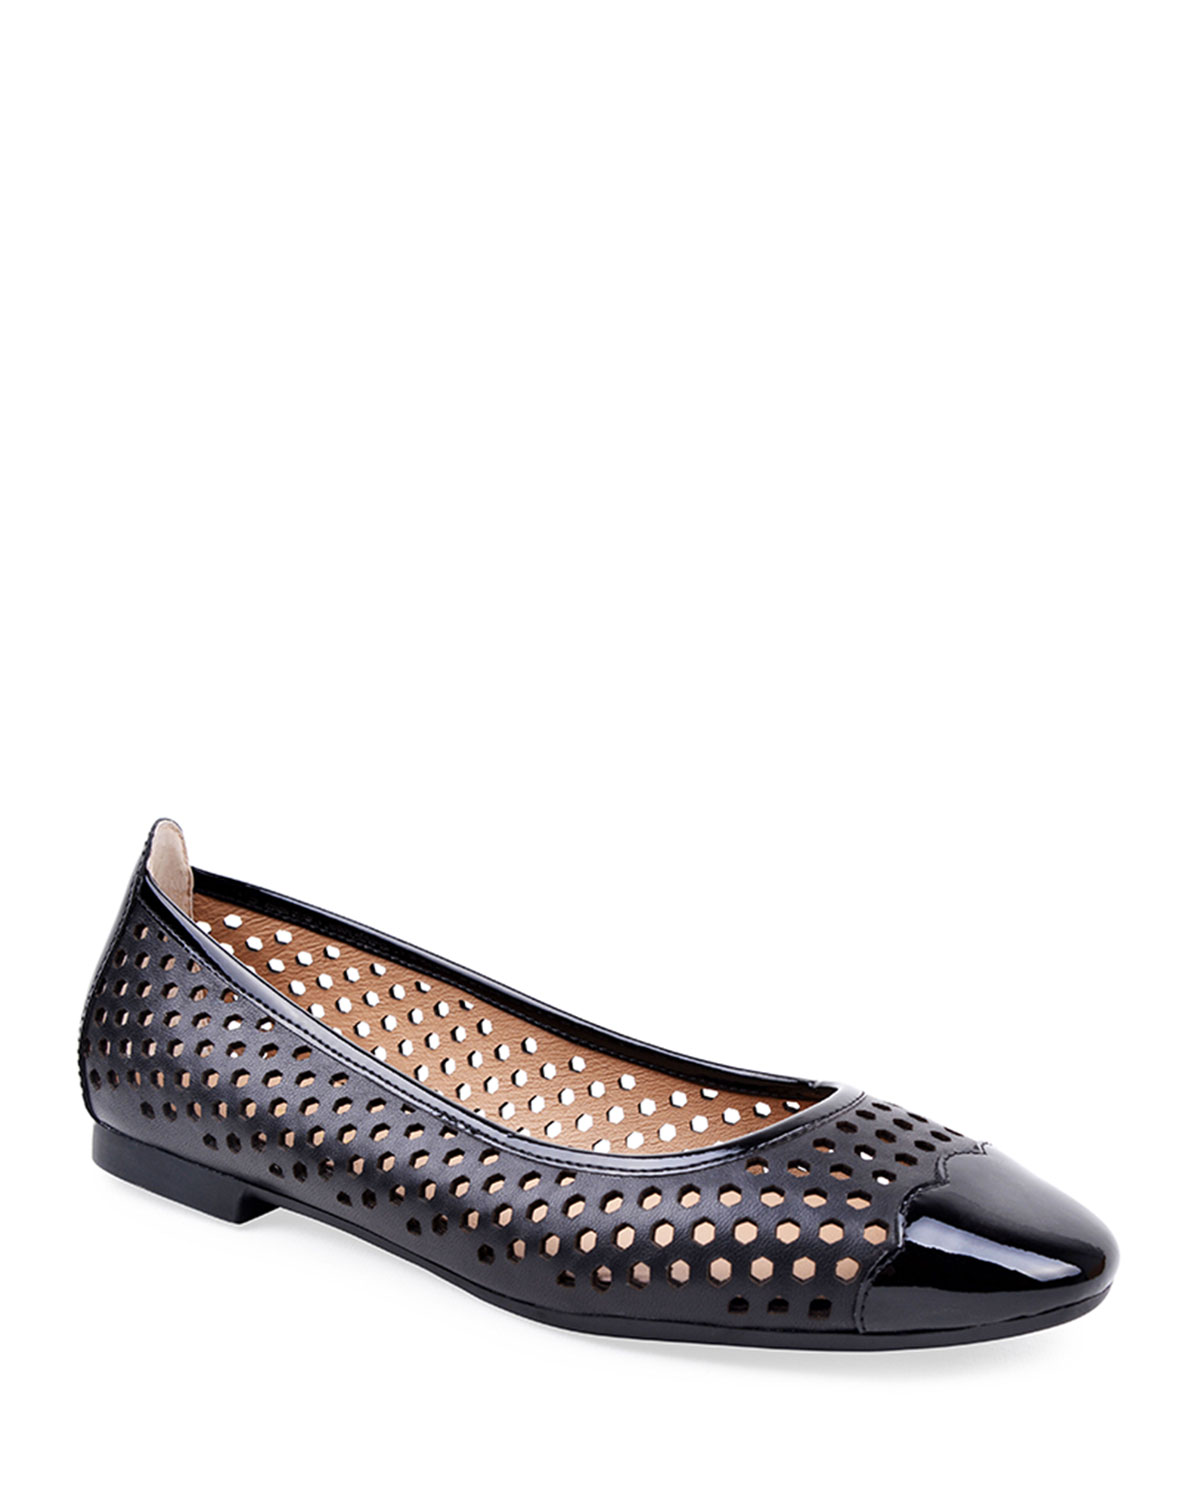 Janae Perforated Leather Flats, Black